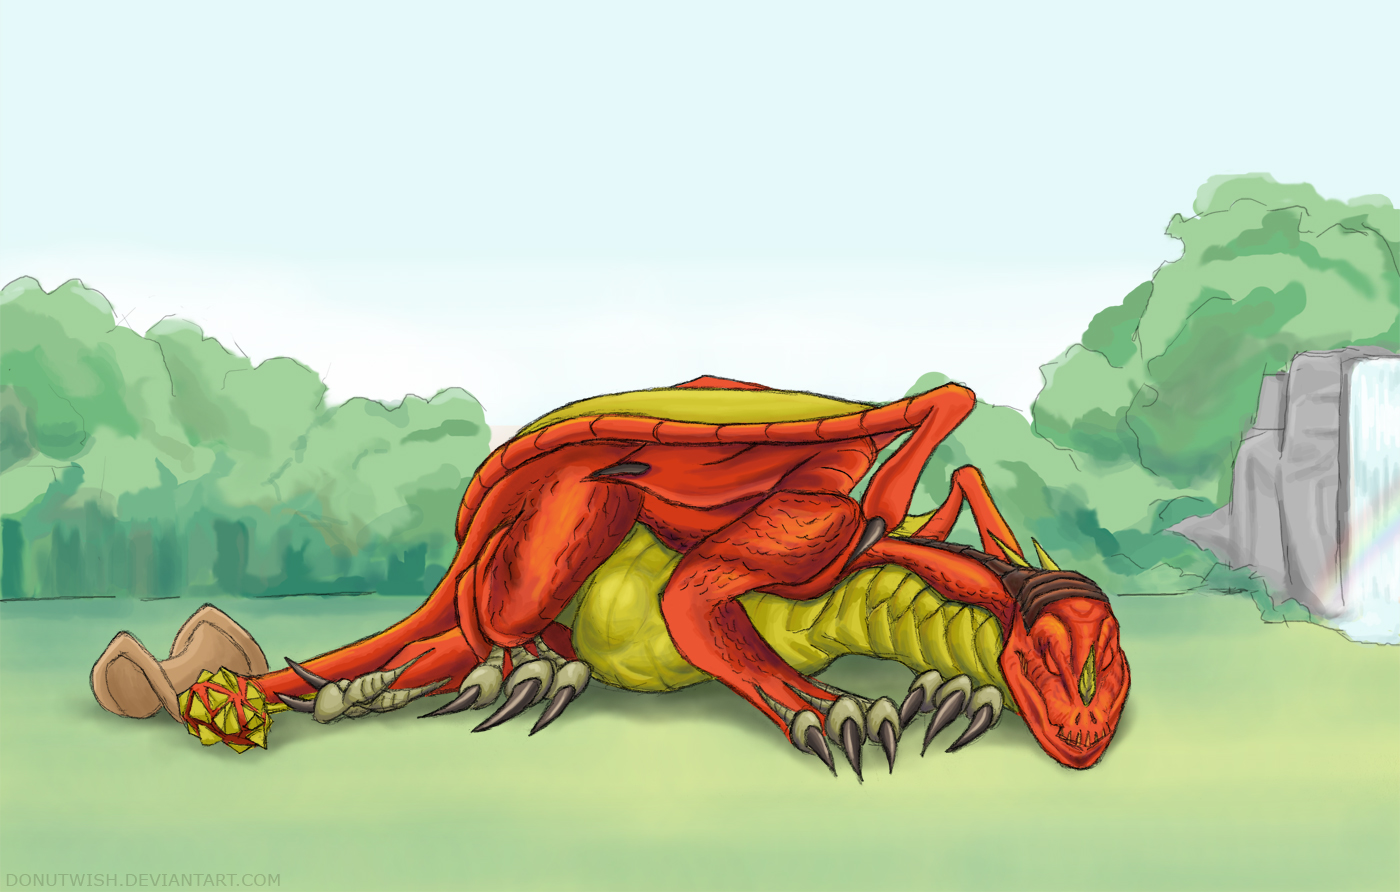 Dragon vore animation xxx pic